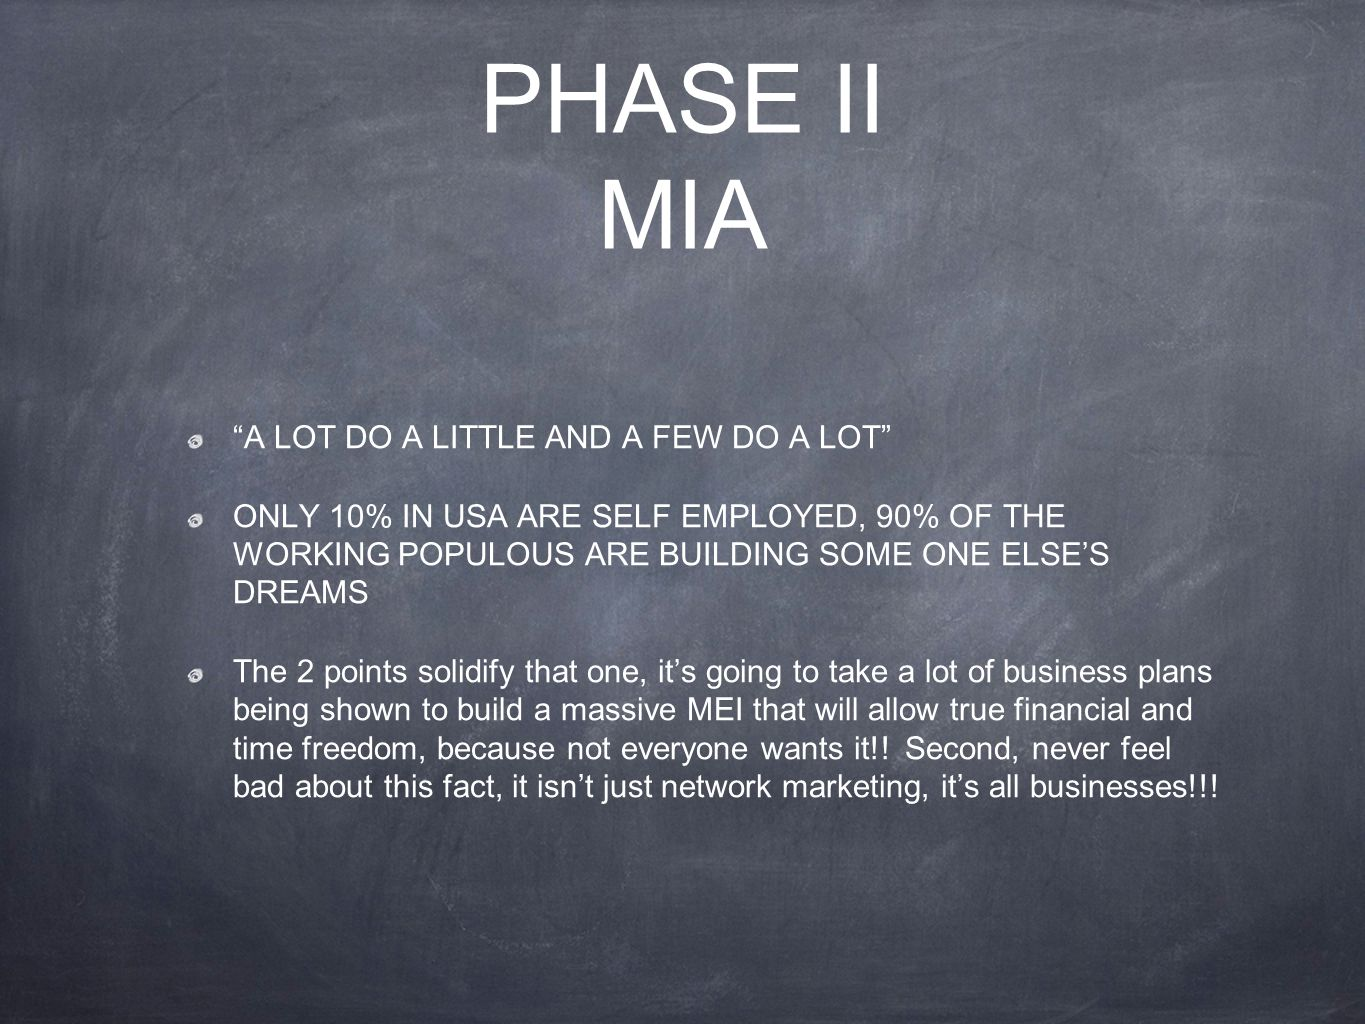 PHASE II MIA A LOT DO A LITTLE AND A FEW DO A LOT ONLY 10% IN USA ARE SELF EMPLOYED, 90% OF THE WORKING POPULOUS ARE BUILDING SOME ONE ELSE'S DREAMS The 2 points solidify that one, it's going to take a lot of business plans being shown to build a massive MEI that will allow true financial and time freedom, because not everyone wants it!.